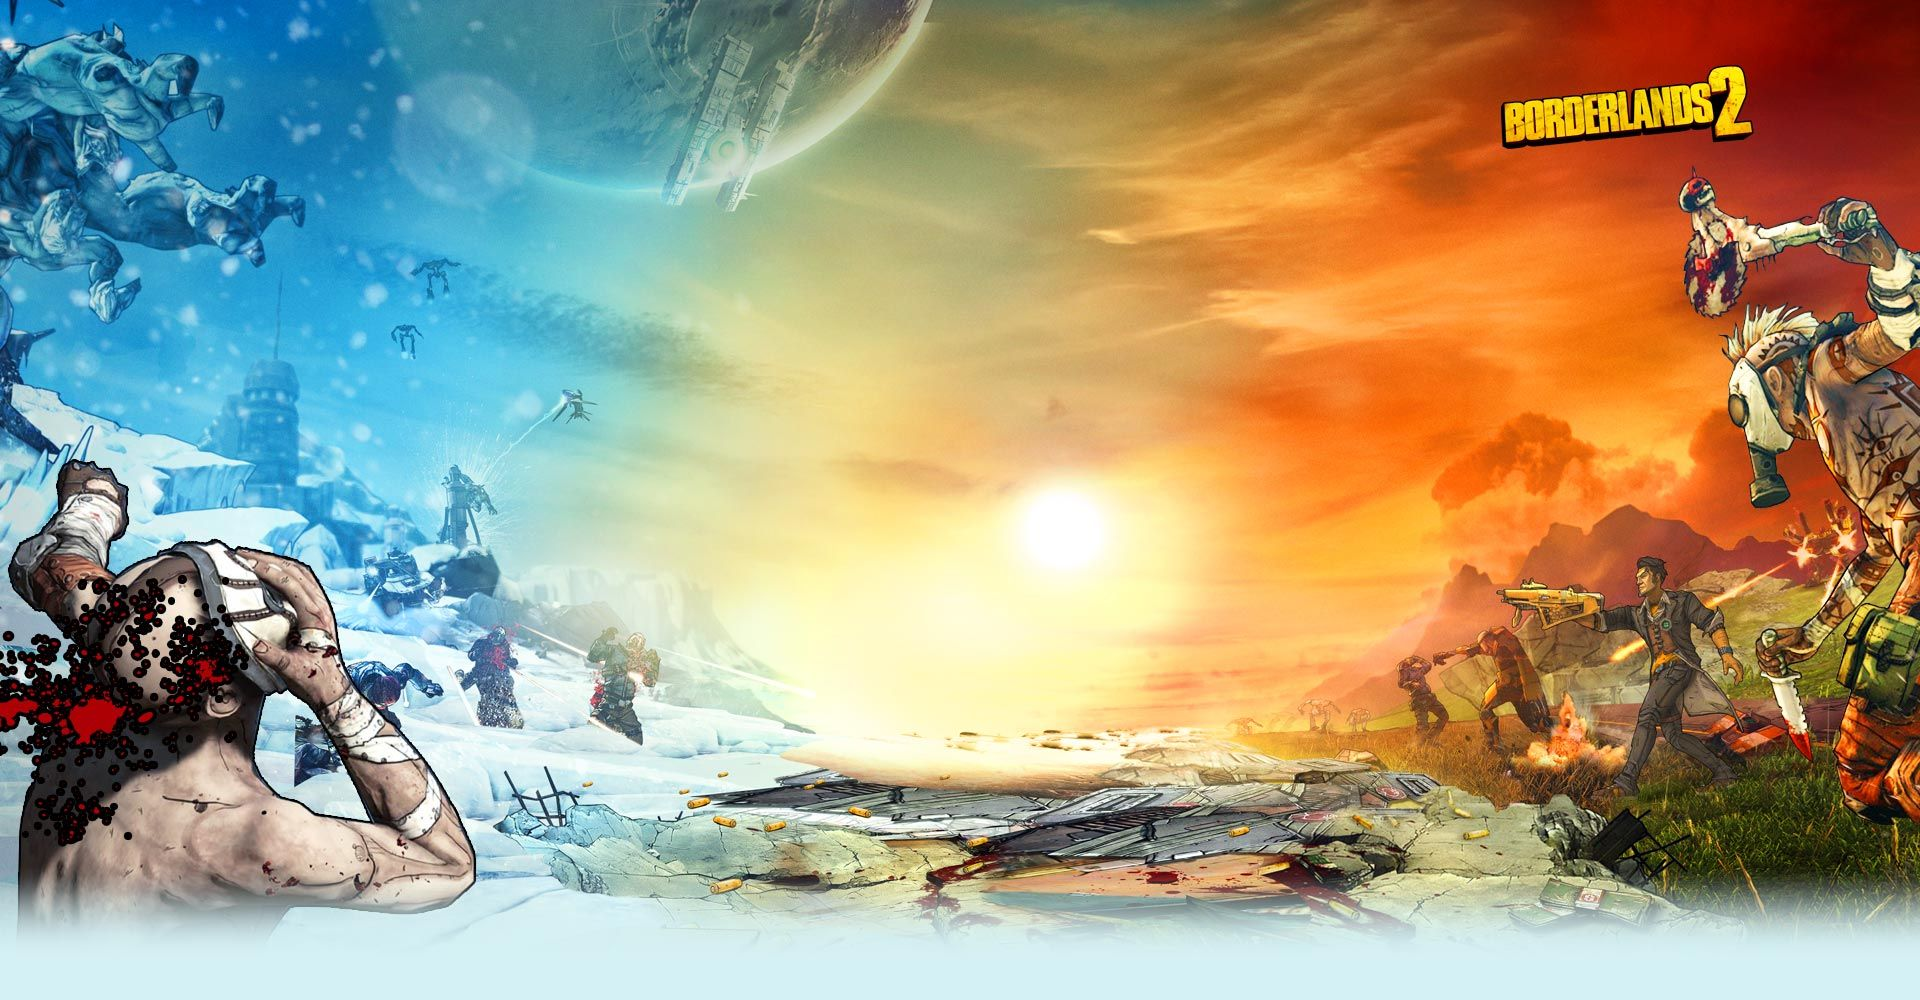 Pin by Tyron Showers on Gaming in 2019 Borderlands 2